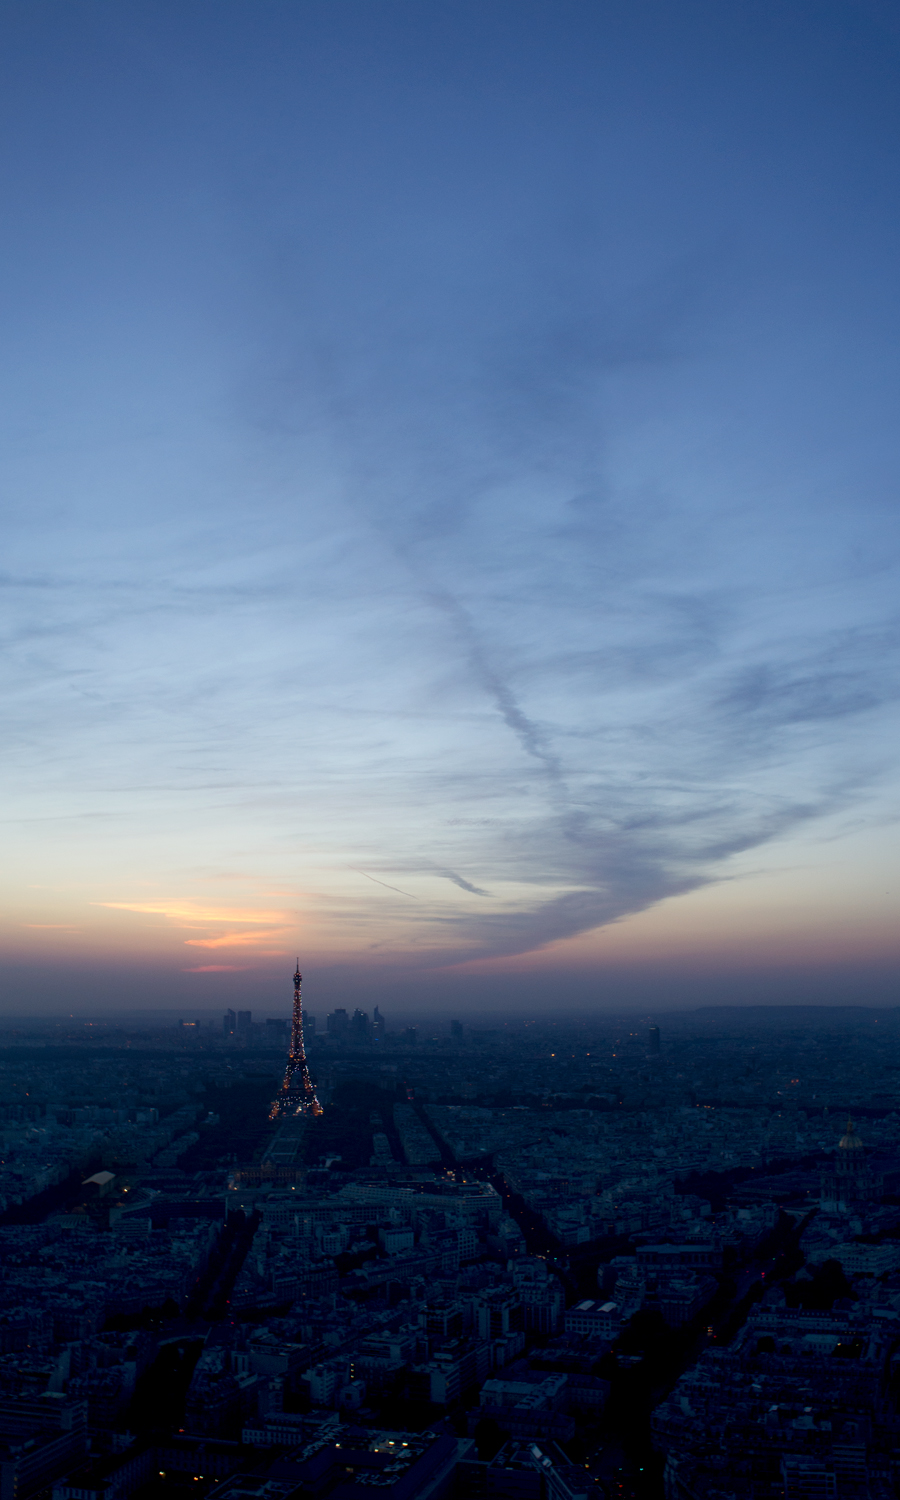 2014-montparnasse-56-tower-paris-france-11